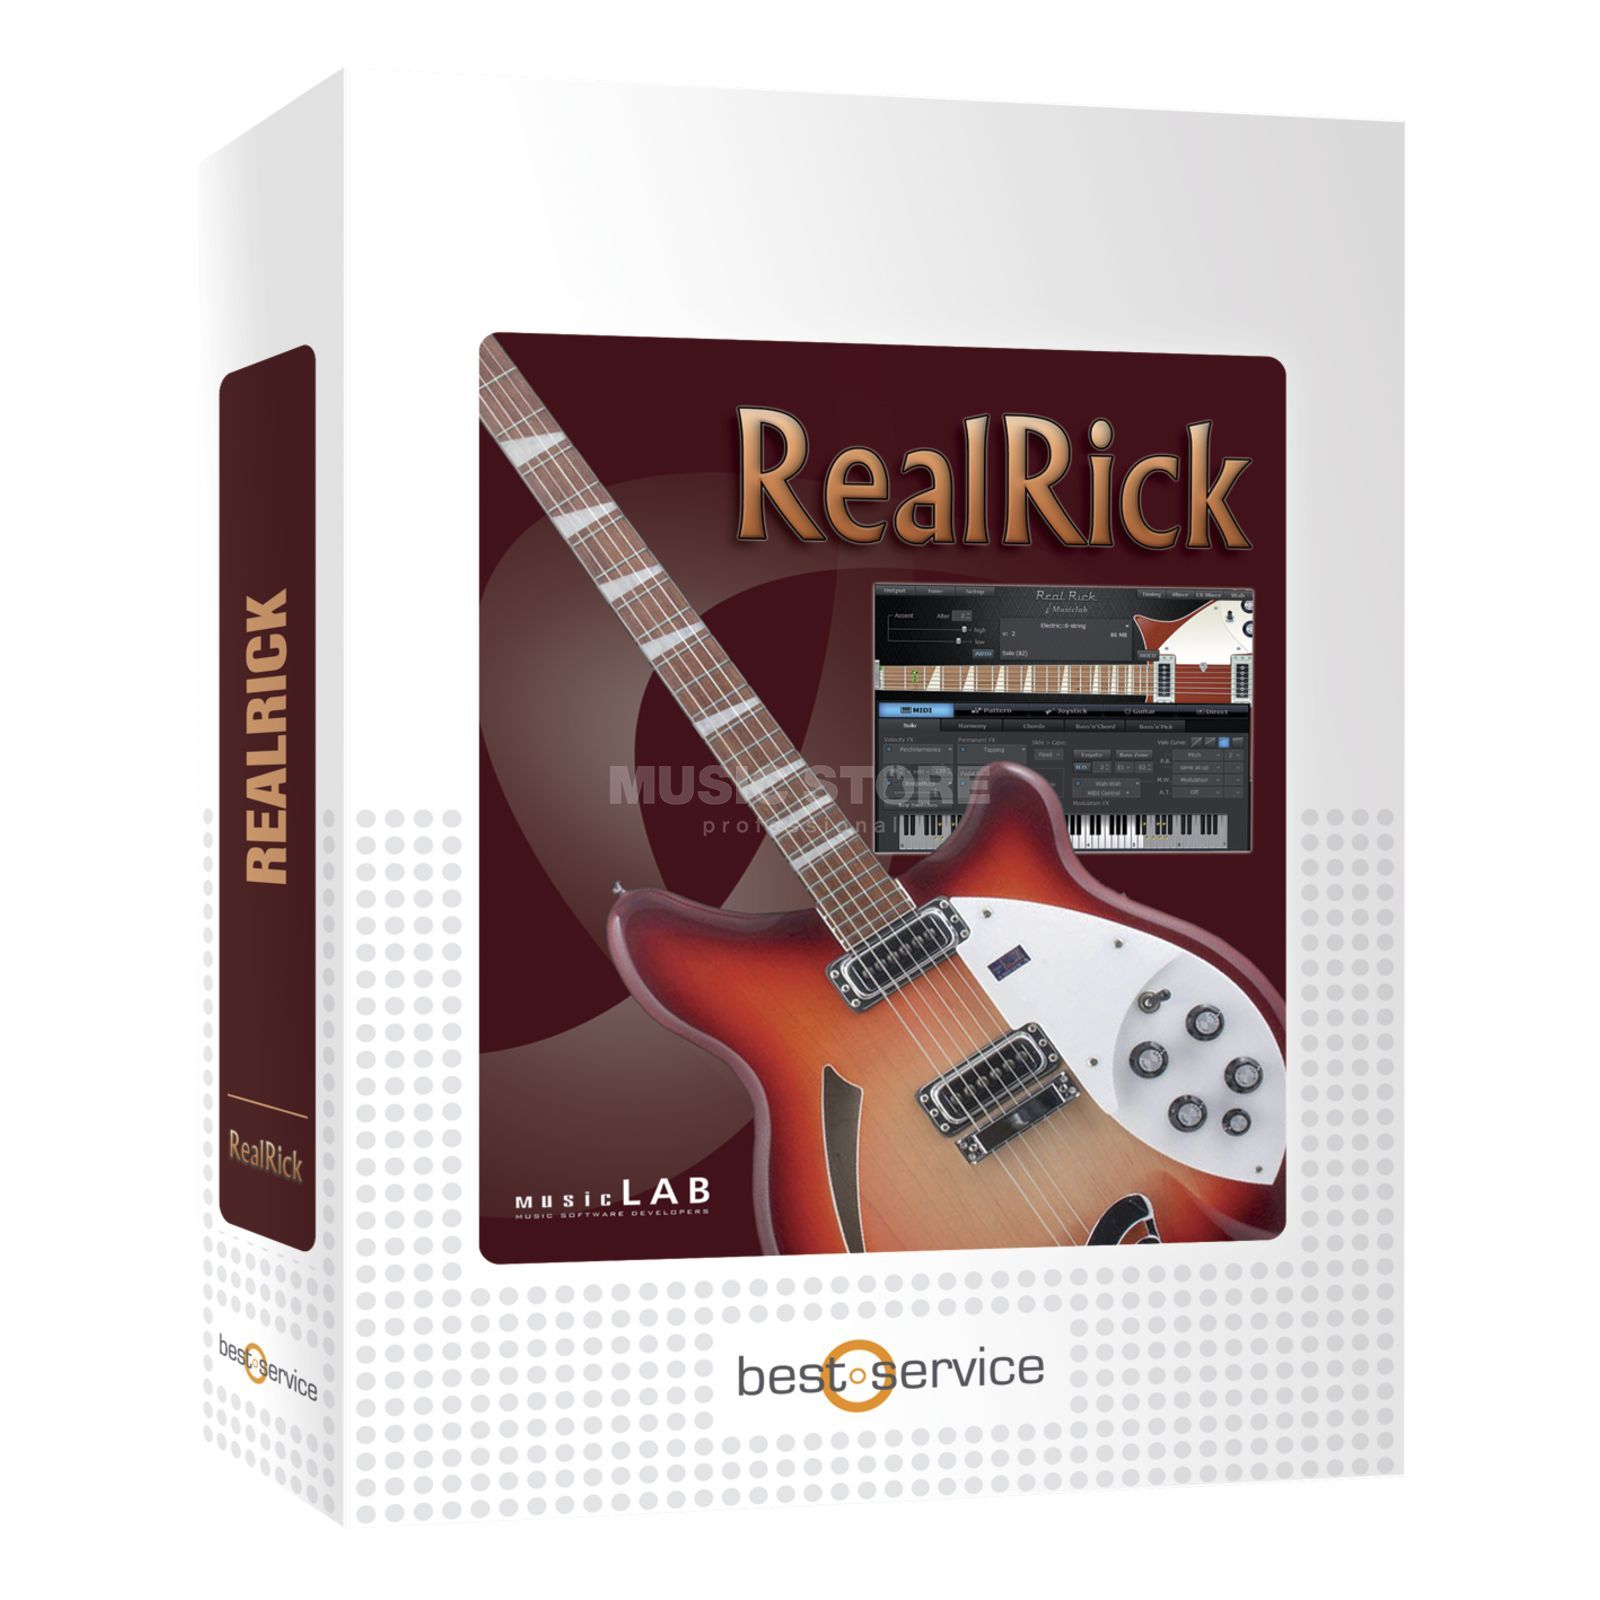 MusicLab RealRick /boxed  Produktbillede